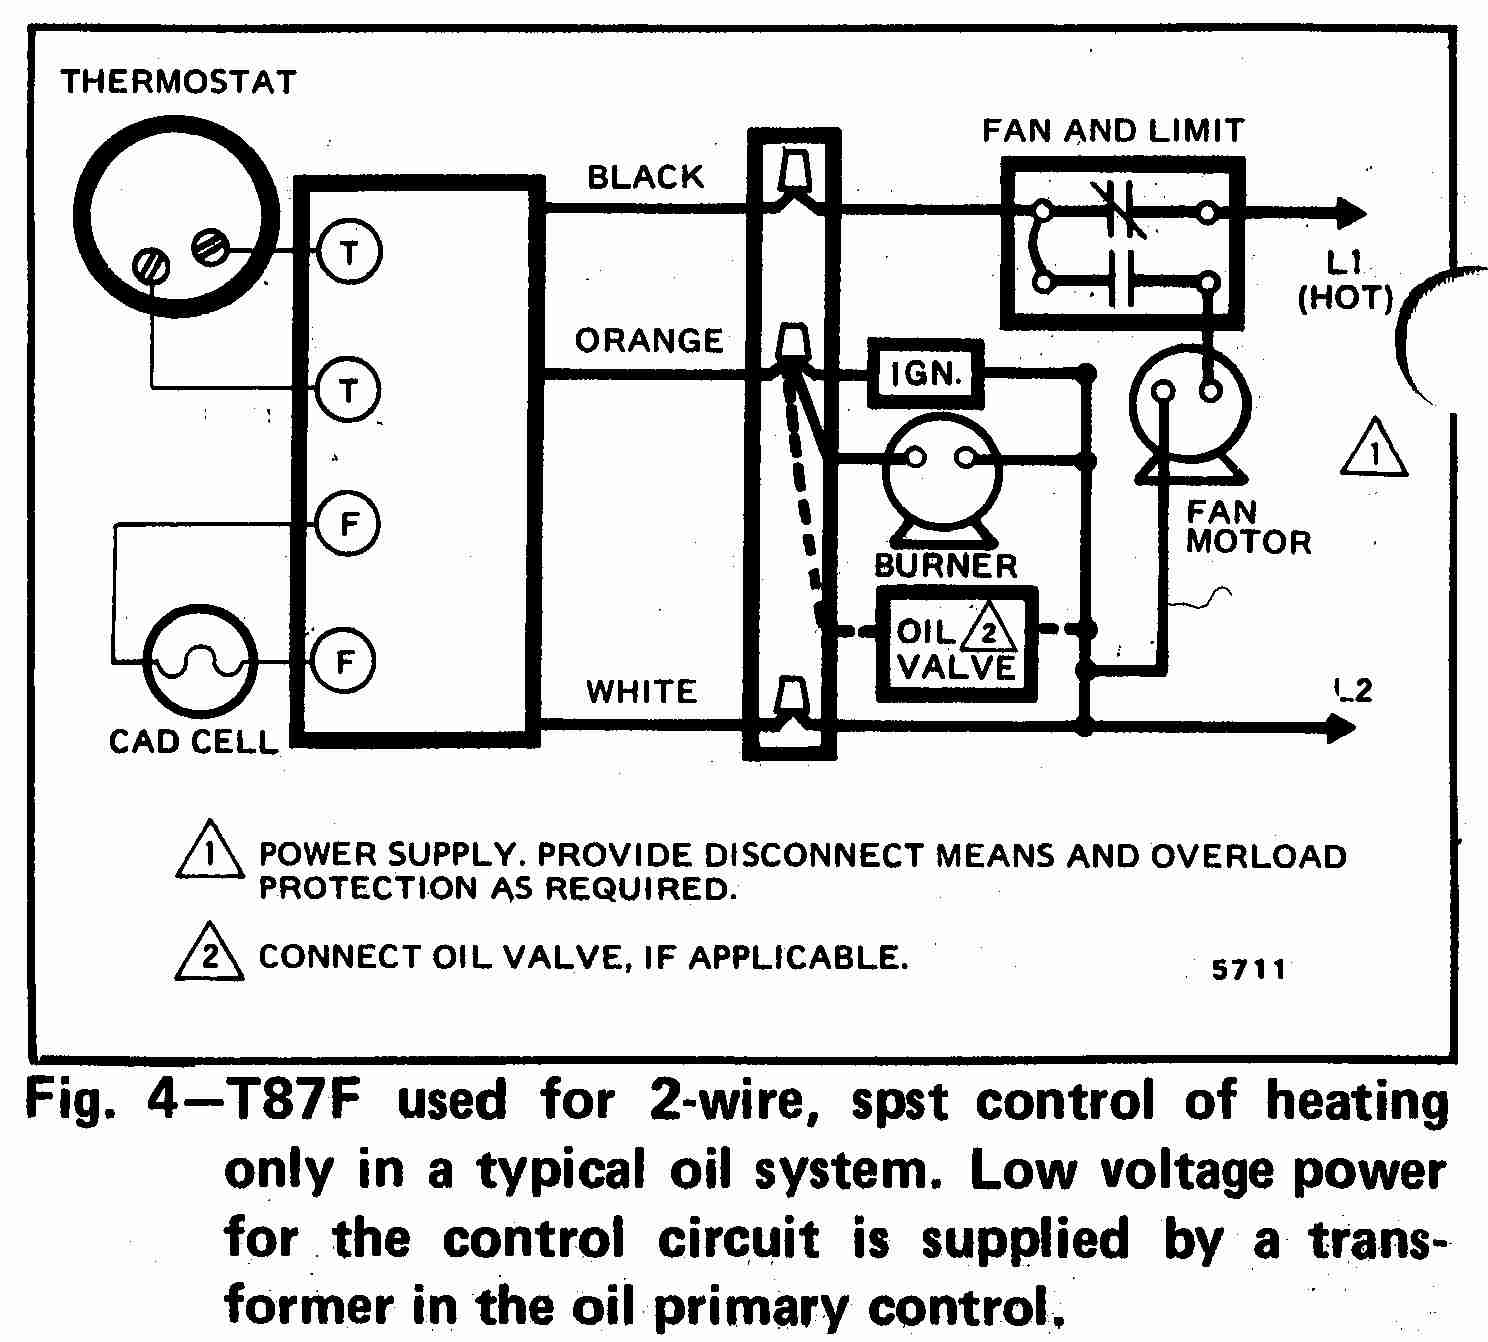 TT_T87F_0002_2W_DJF room thermostat wiring diagrams for hvac systems wiring diagram honeywell thermostat at mifinder.co